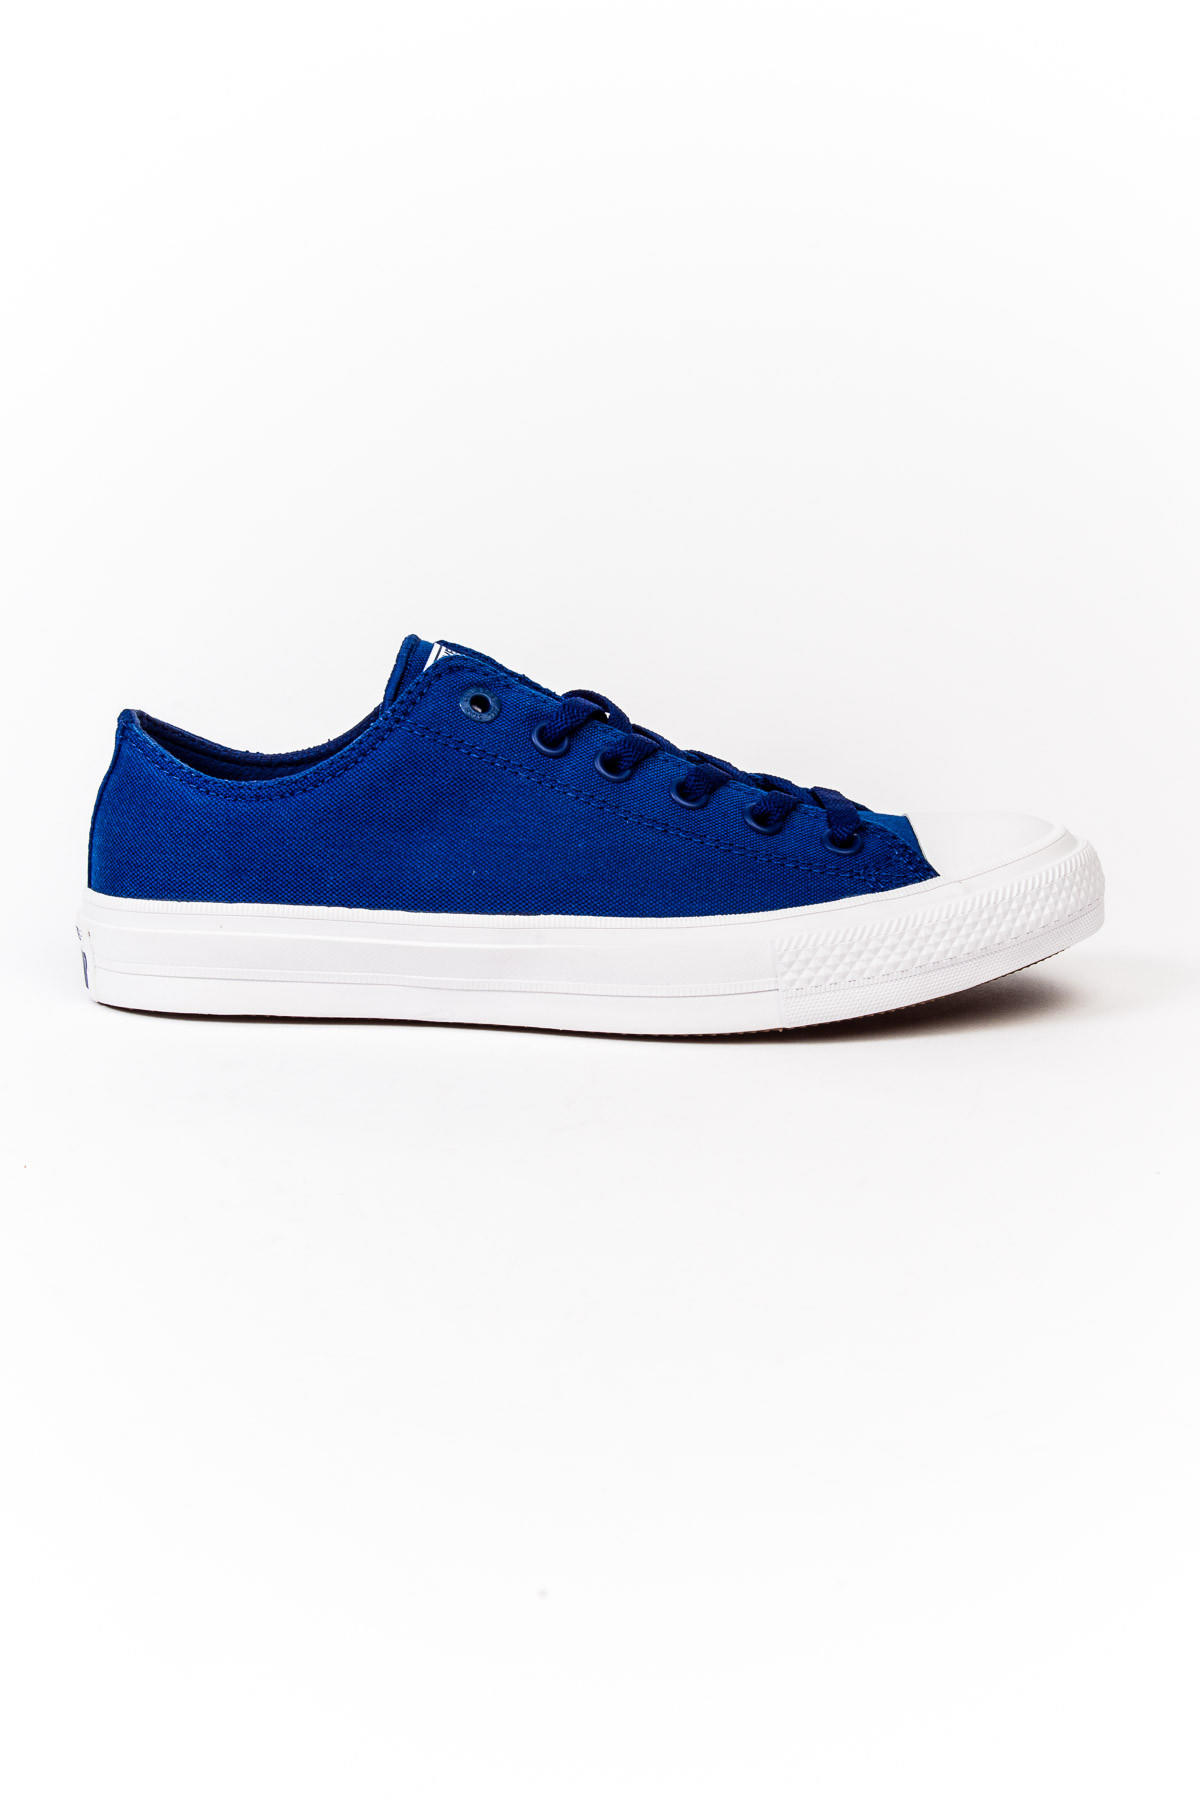 Converse Chuck Taylor All Star II Blue Ox from Probus  2ac6c73802